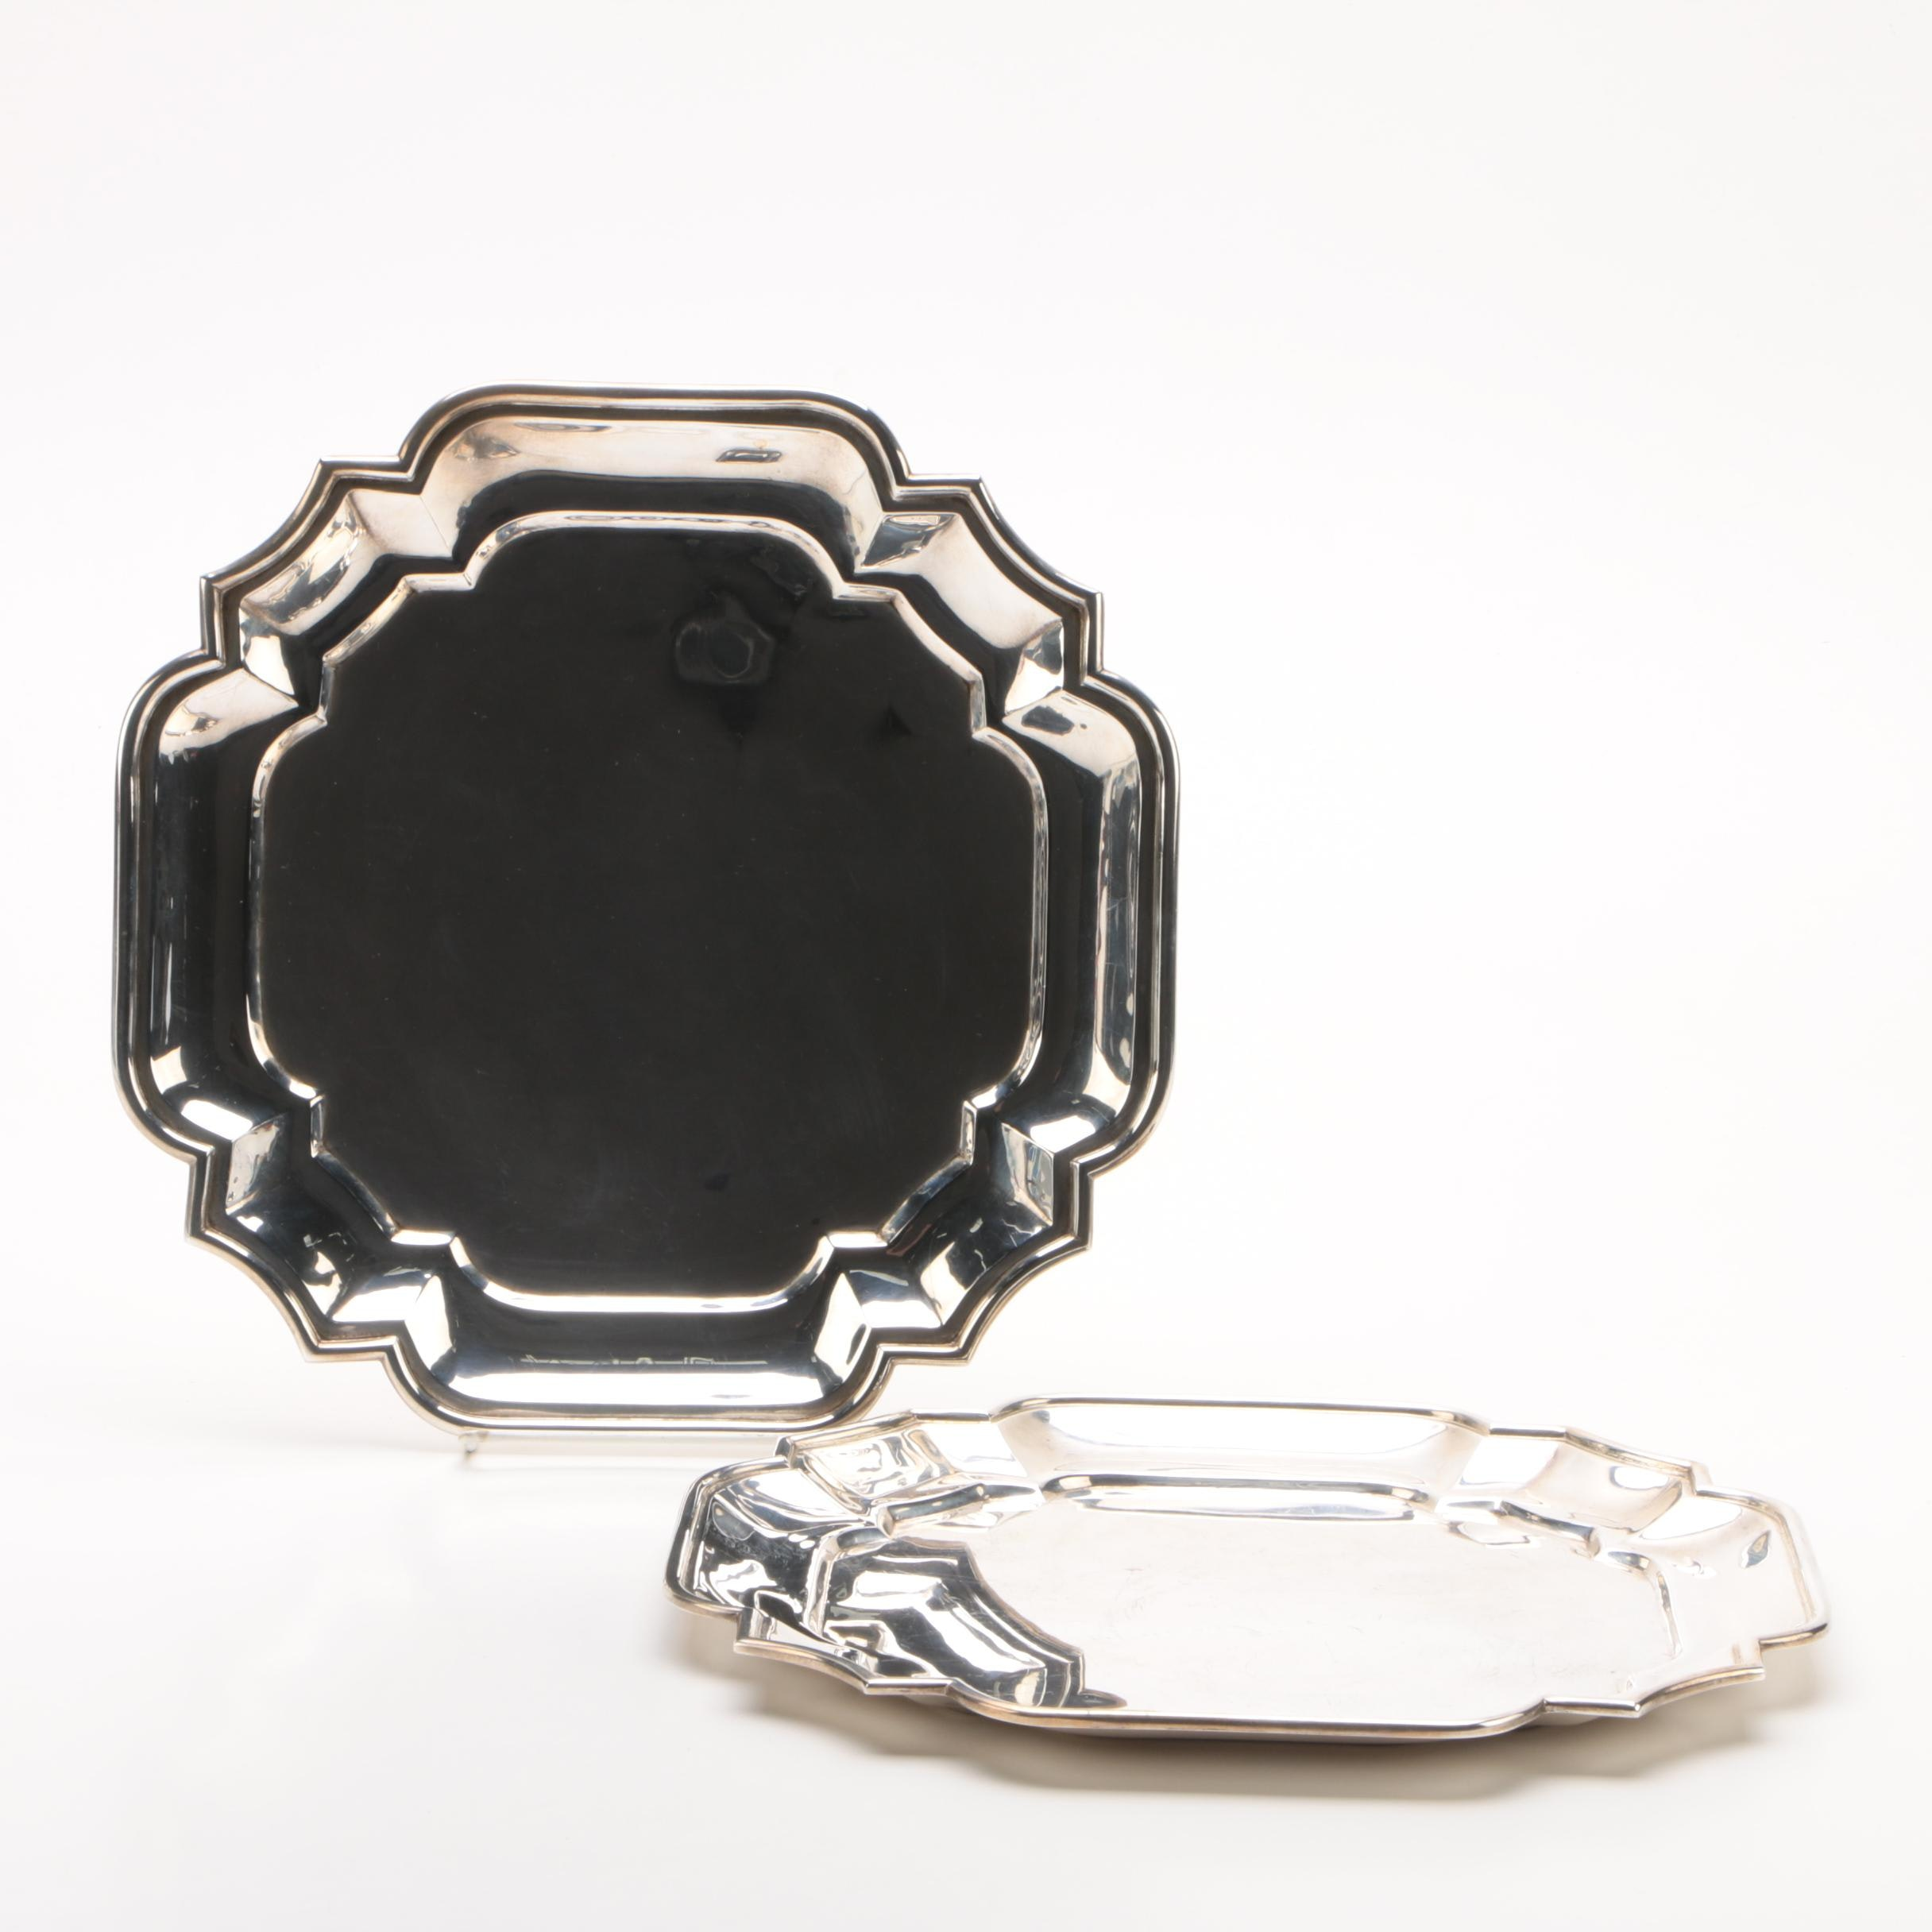 Tane Mexican Sterling Silver Serving Trays